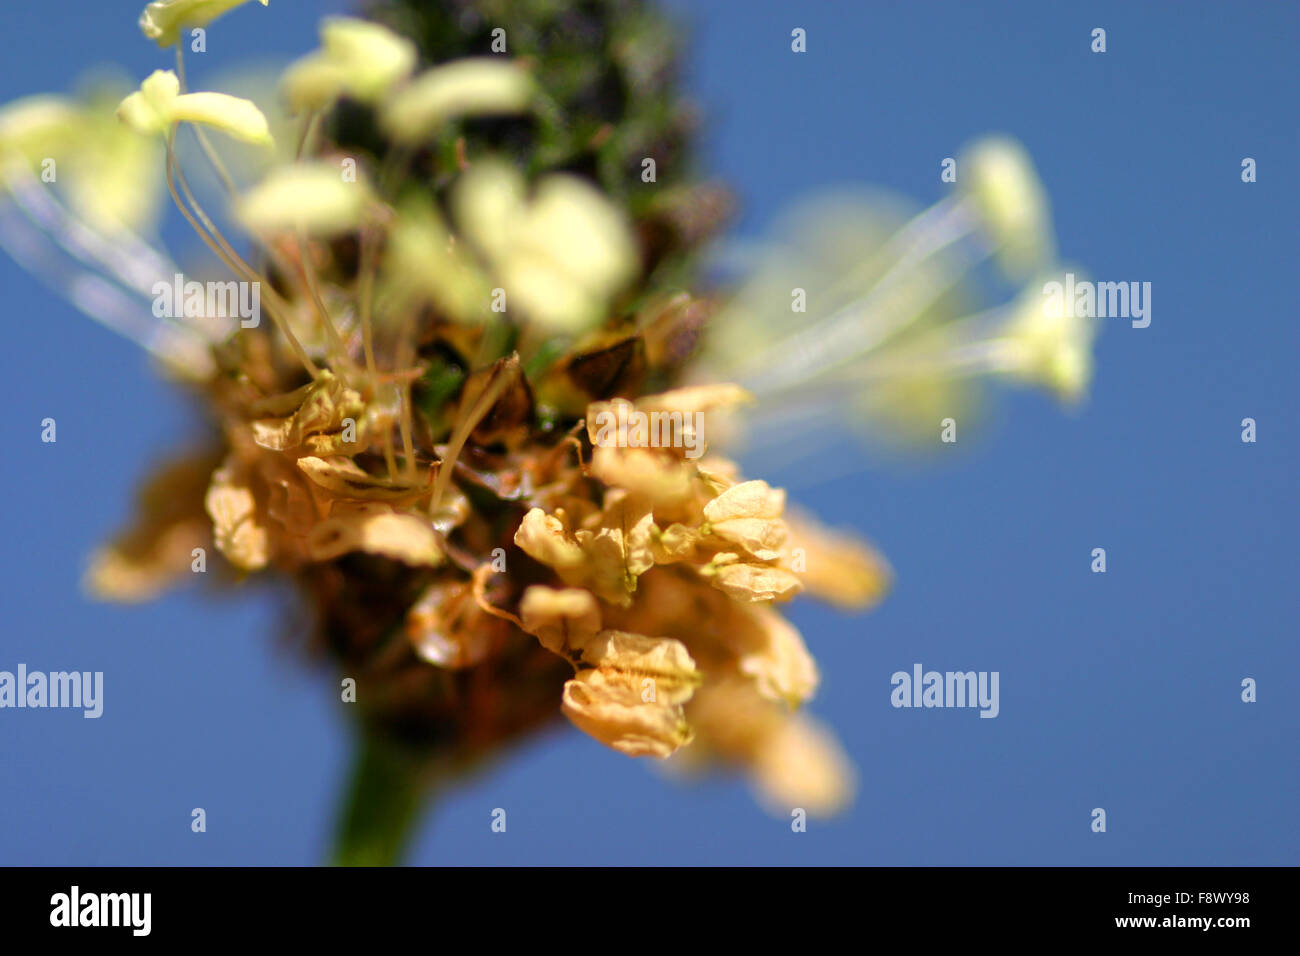 Close up of seed head - Stock Image